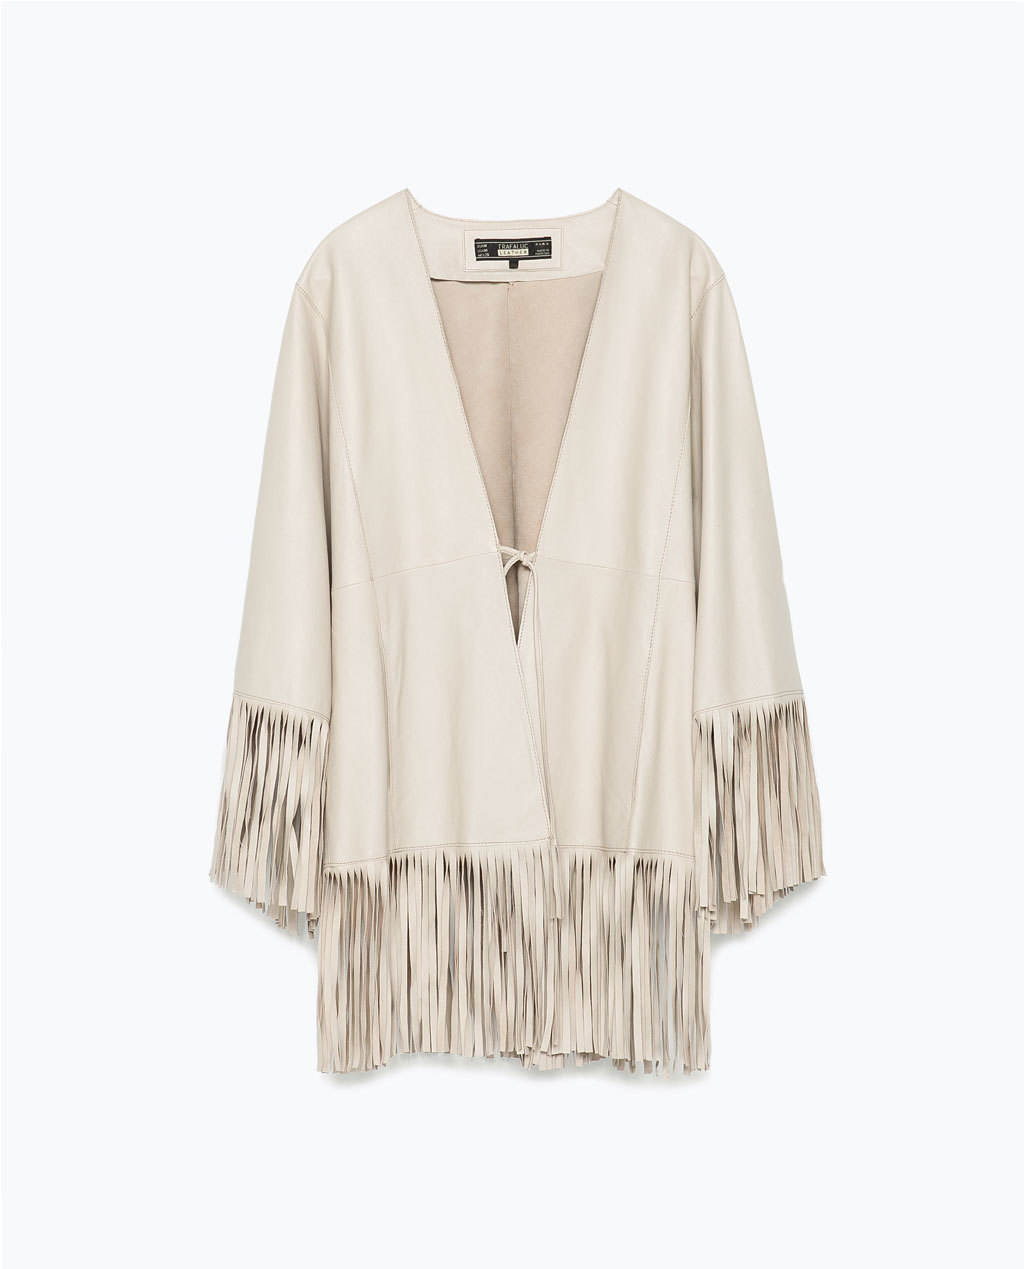 Leather Fringed Poncho - pattern: plain; length: below the bottom; collar: round collar/collarless; fit: loose; style: poncho/blanket; predominant colour: ivory/cream; occasions: casual, evening, creative work; fibres: leather - 100%; sleeve length: long sleeve; sleeve style: standard; texture group: leather; collar break: low/open; pattern type: fabric; embellishment: fringing; season: s/s 2015; wardrobe: highlight; embellishment location: hip, sleeve/cuff